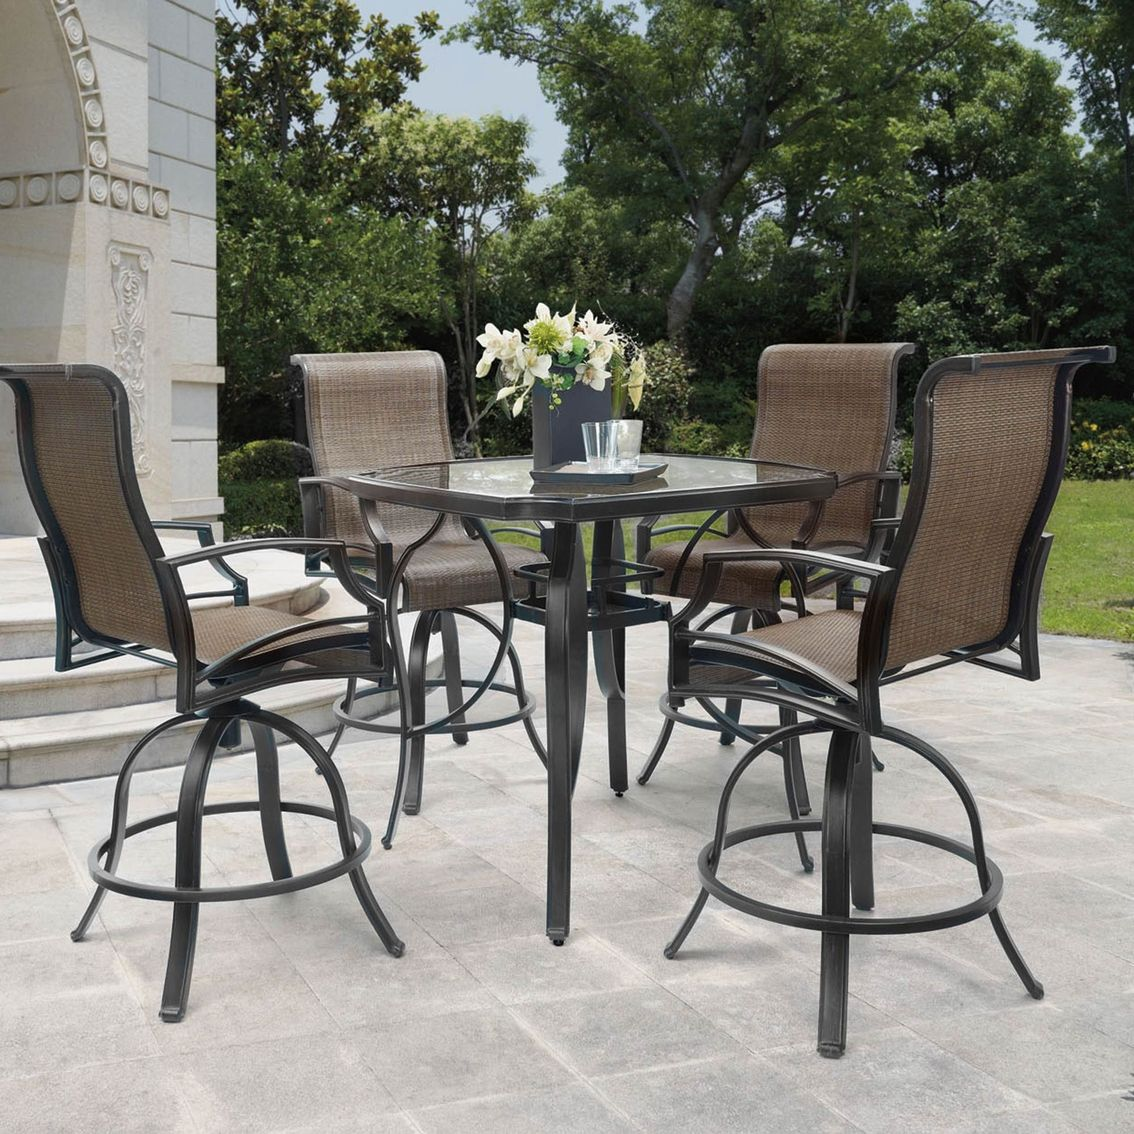 Marvelous Patio Logic Garden Point 5 Pc Balcony Height Dining Set Dining View